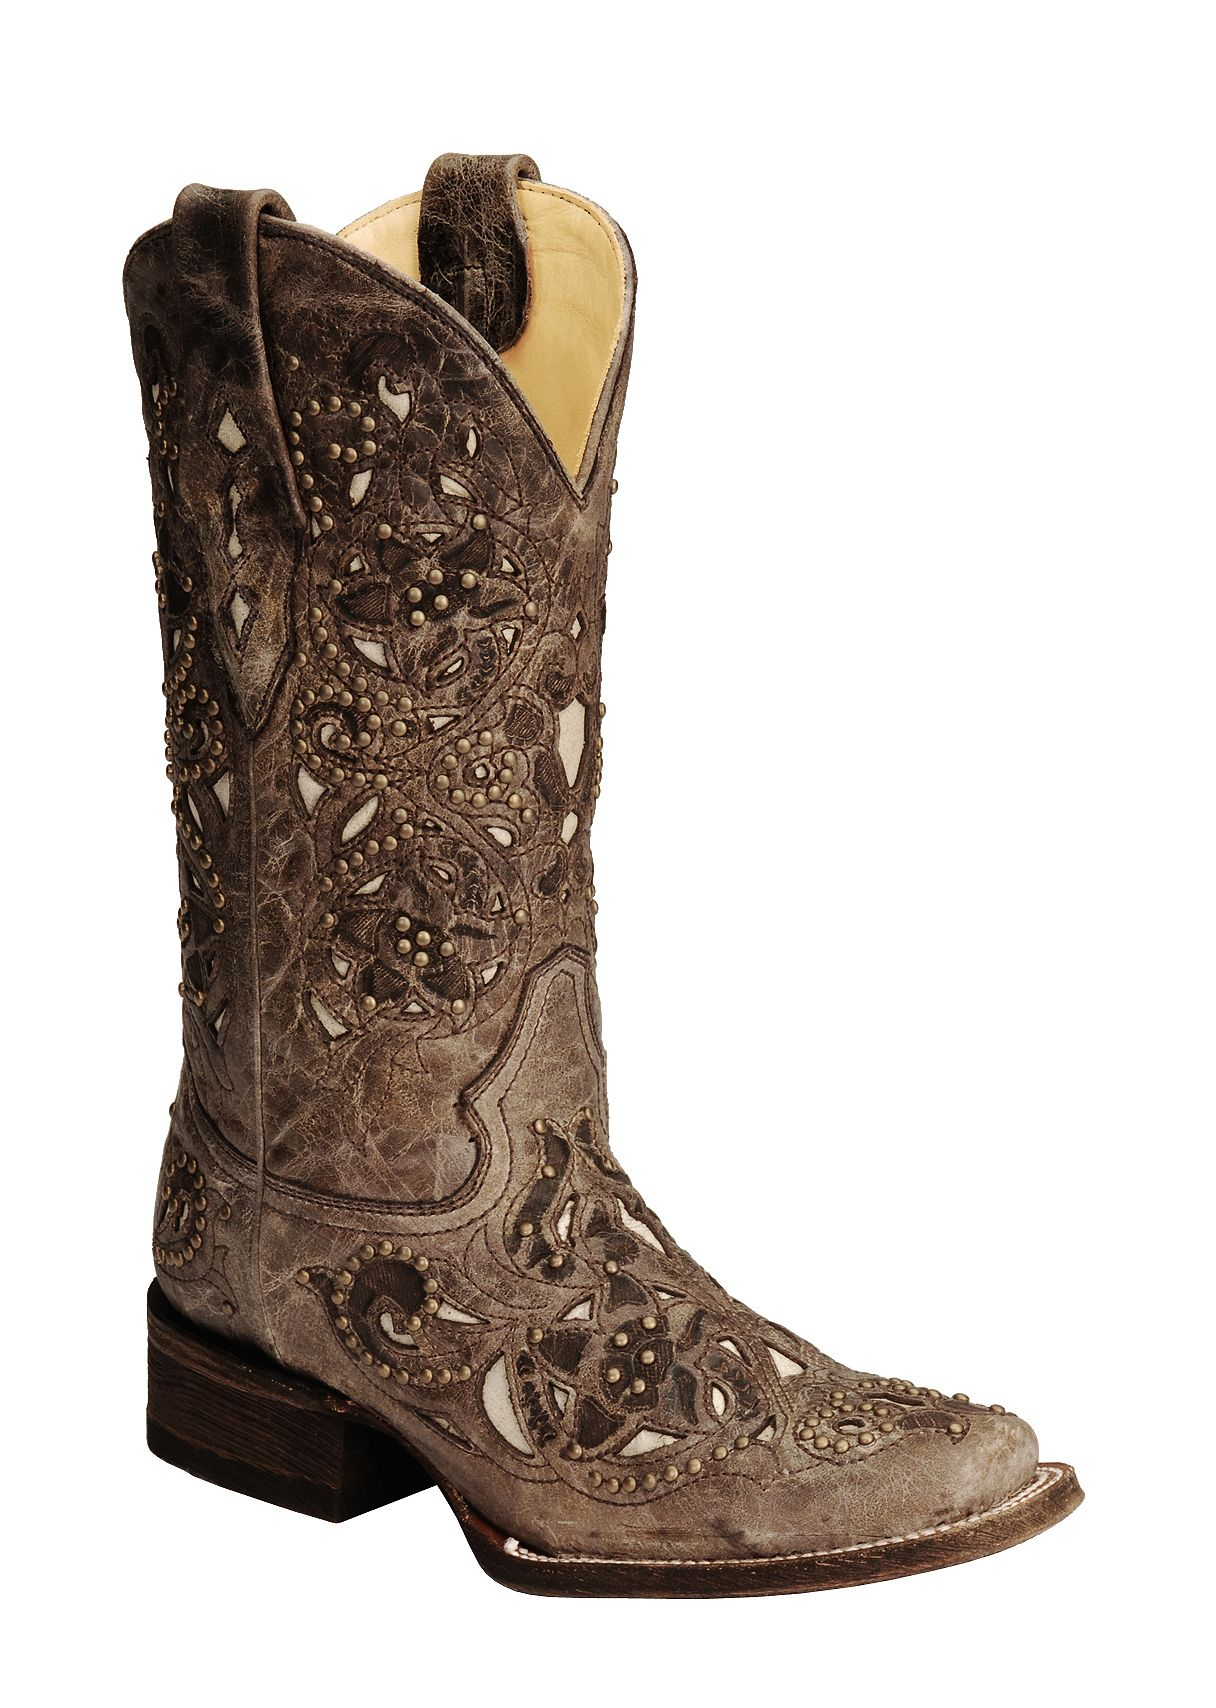 Corral Studded Bone Inlay Crater Cowgirl Boots